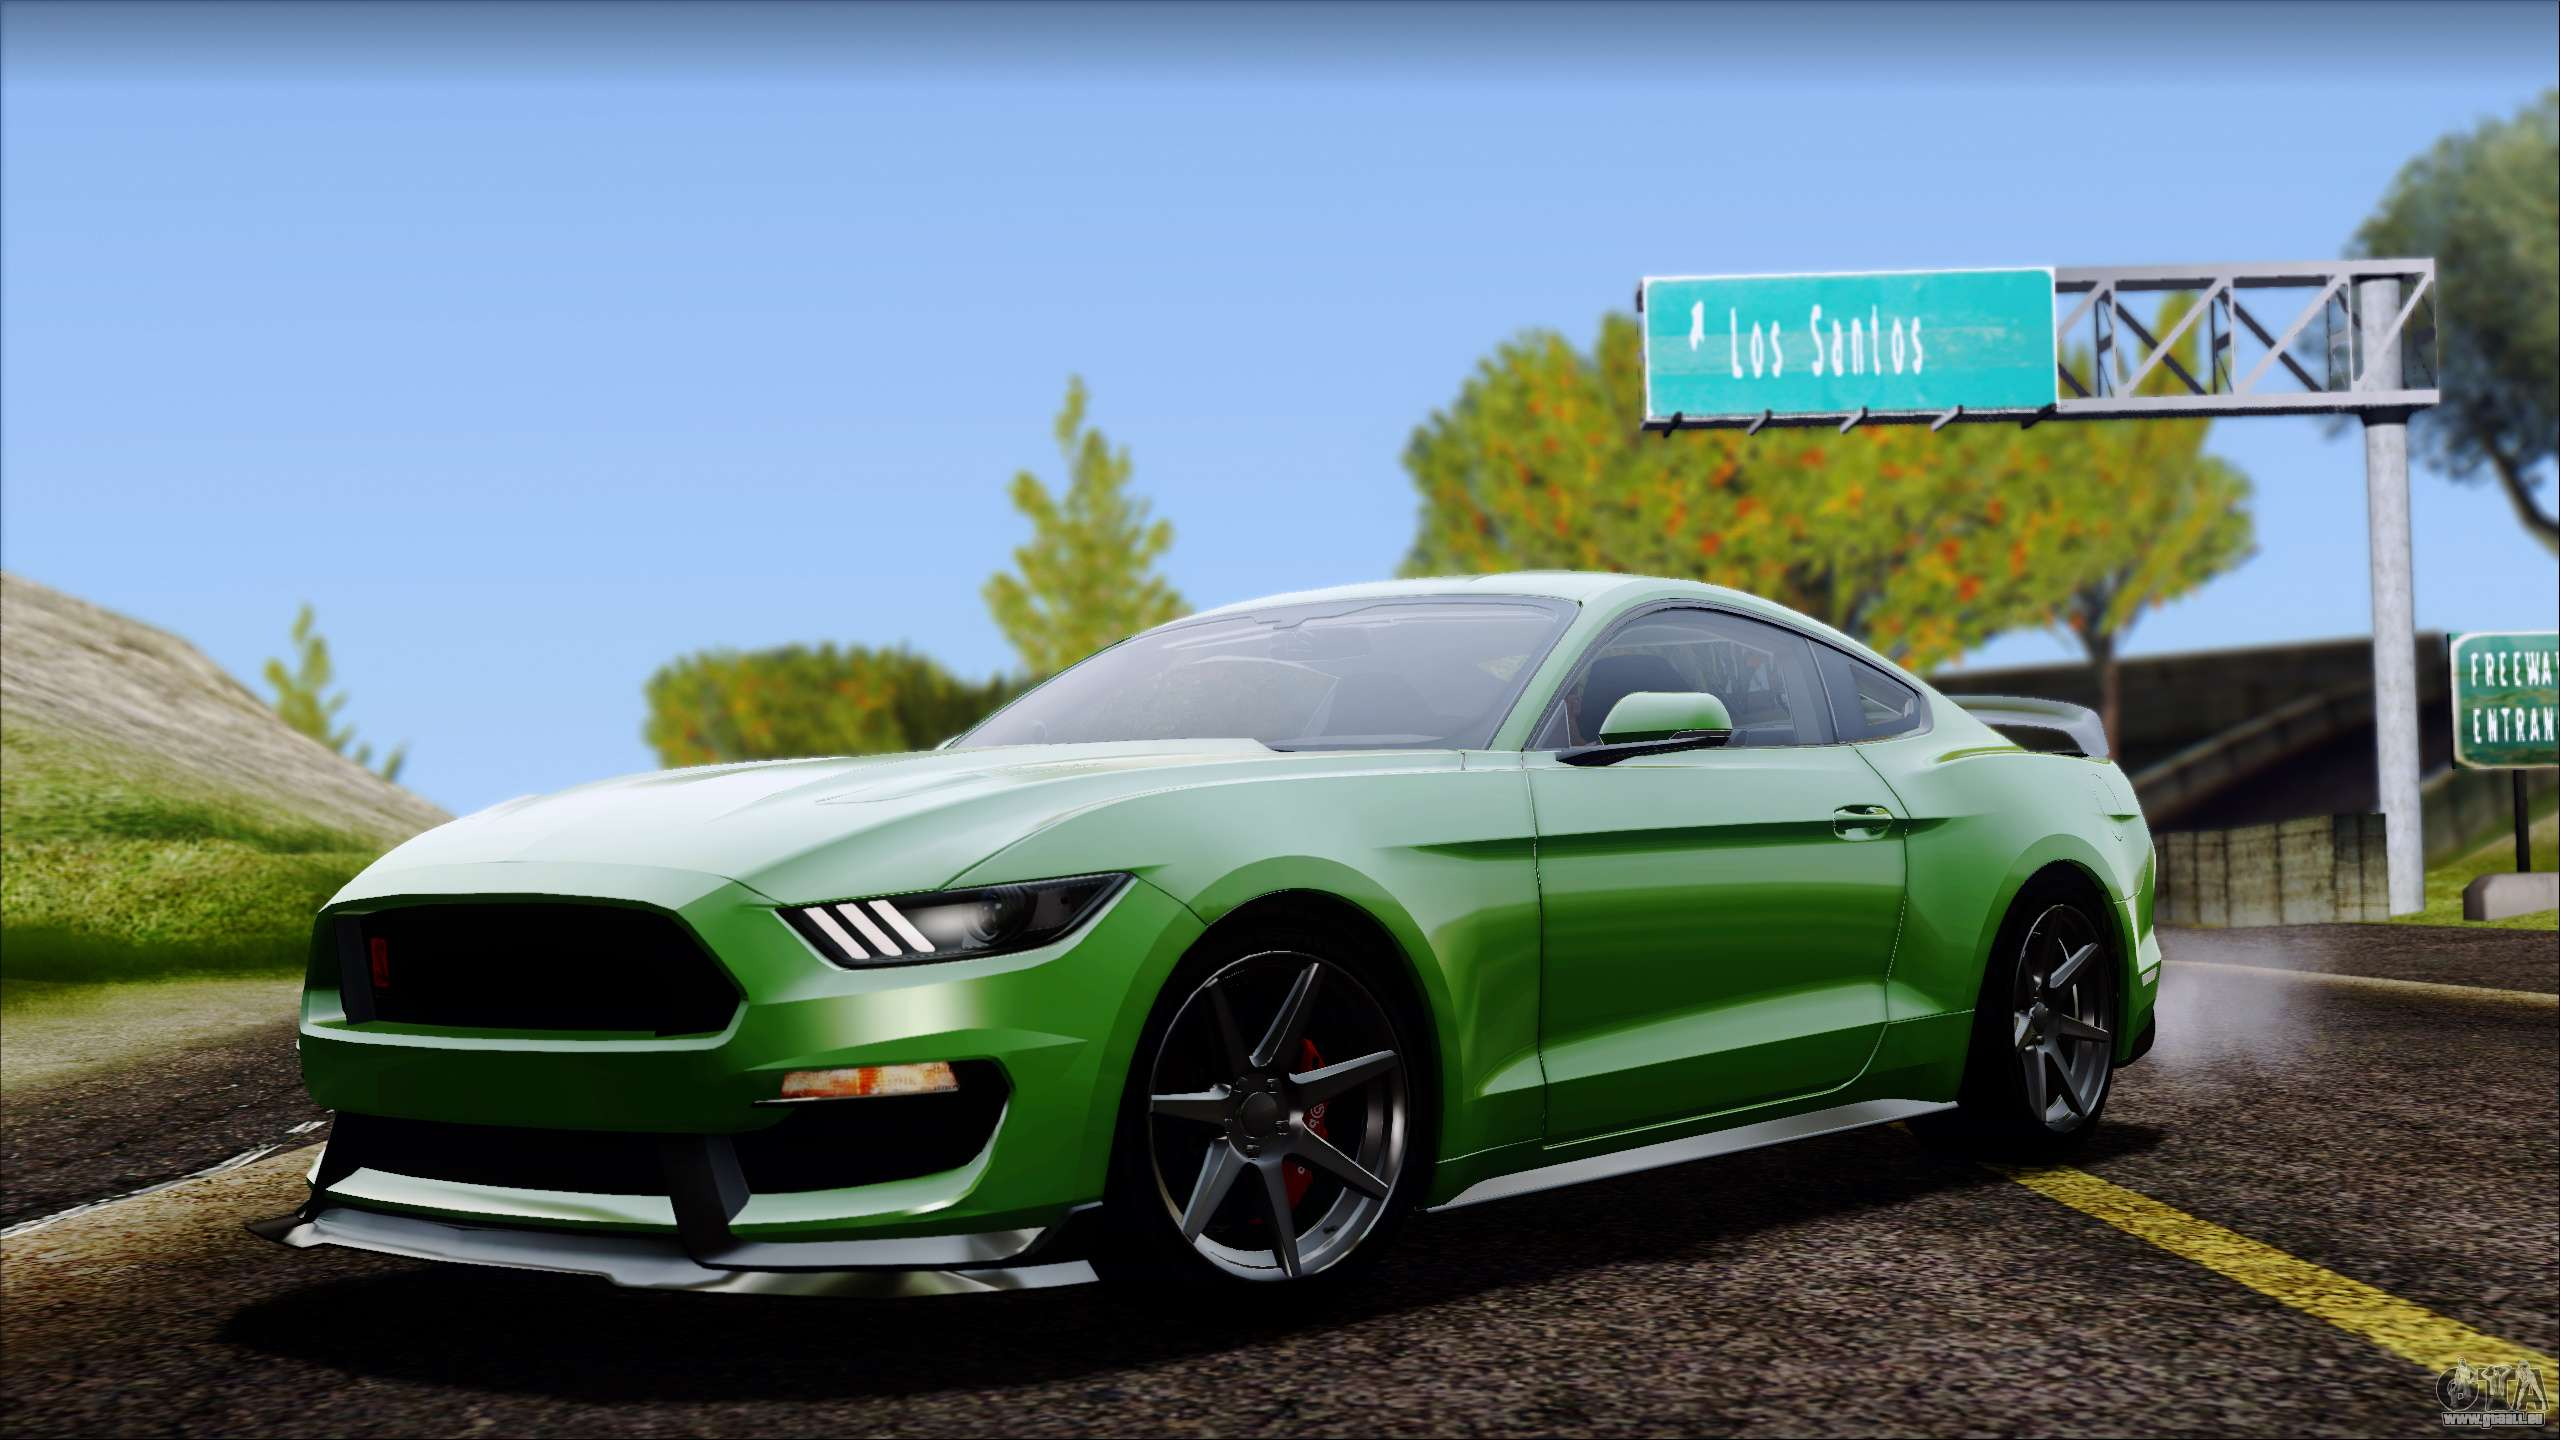 Ford Mustang Shelby Gt350r 2016 No Stripe F 252 R Gta San Andreas